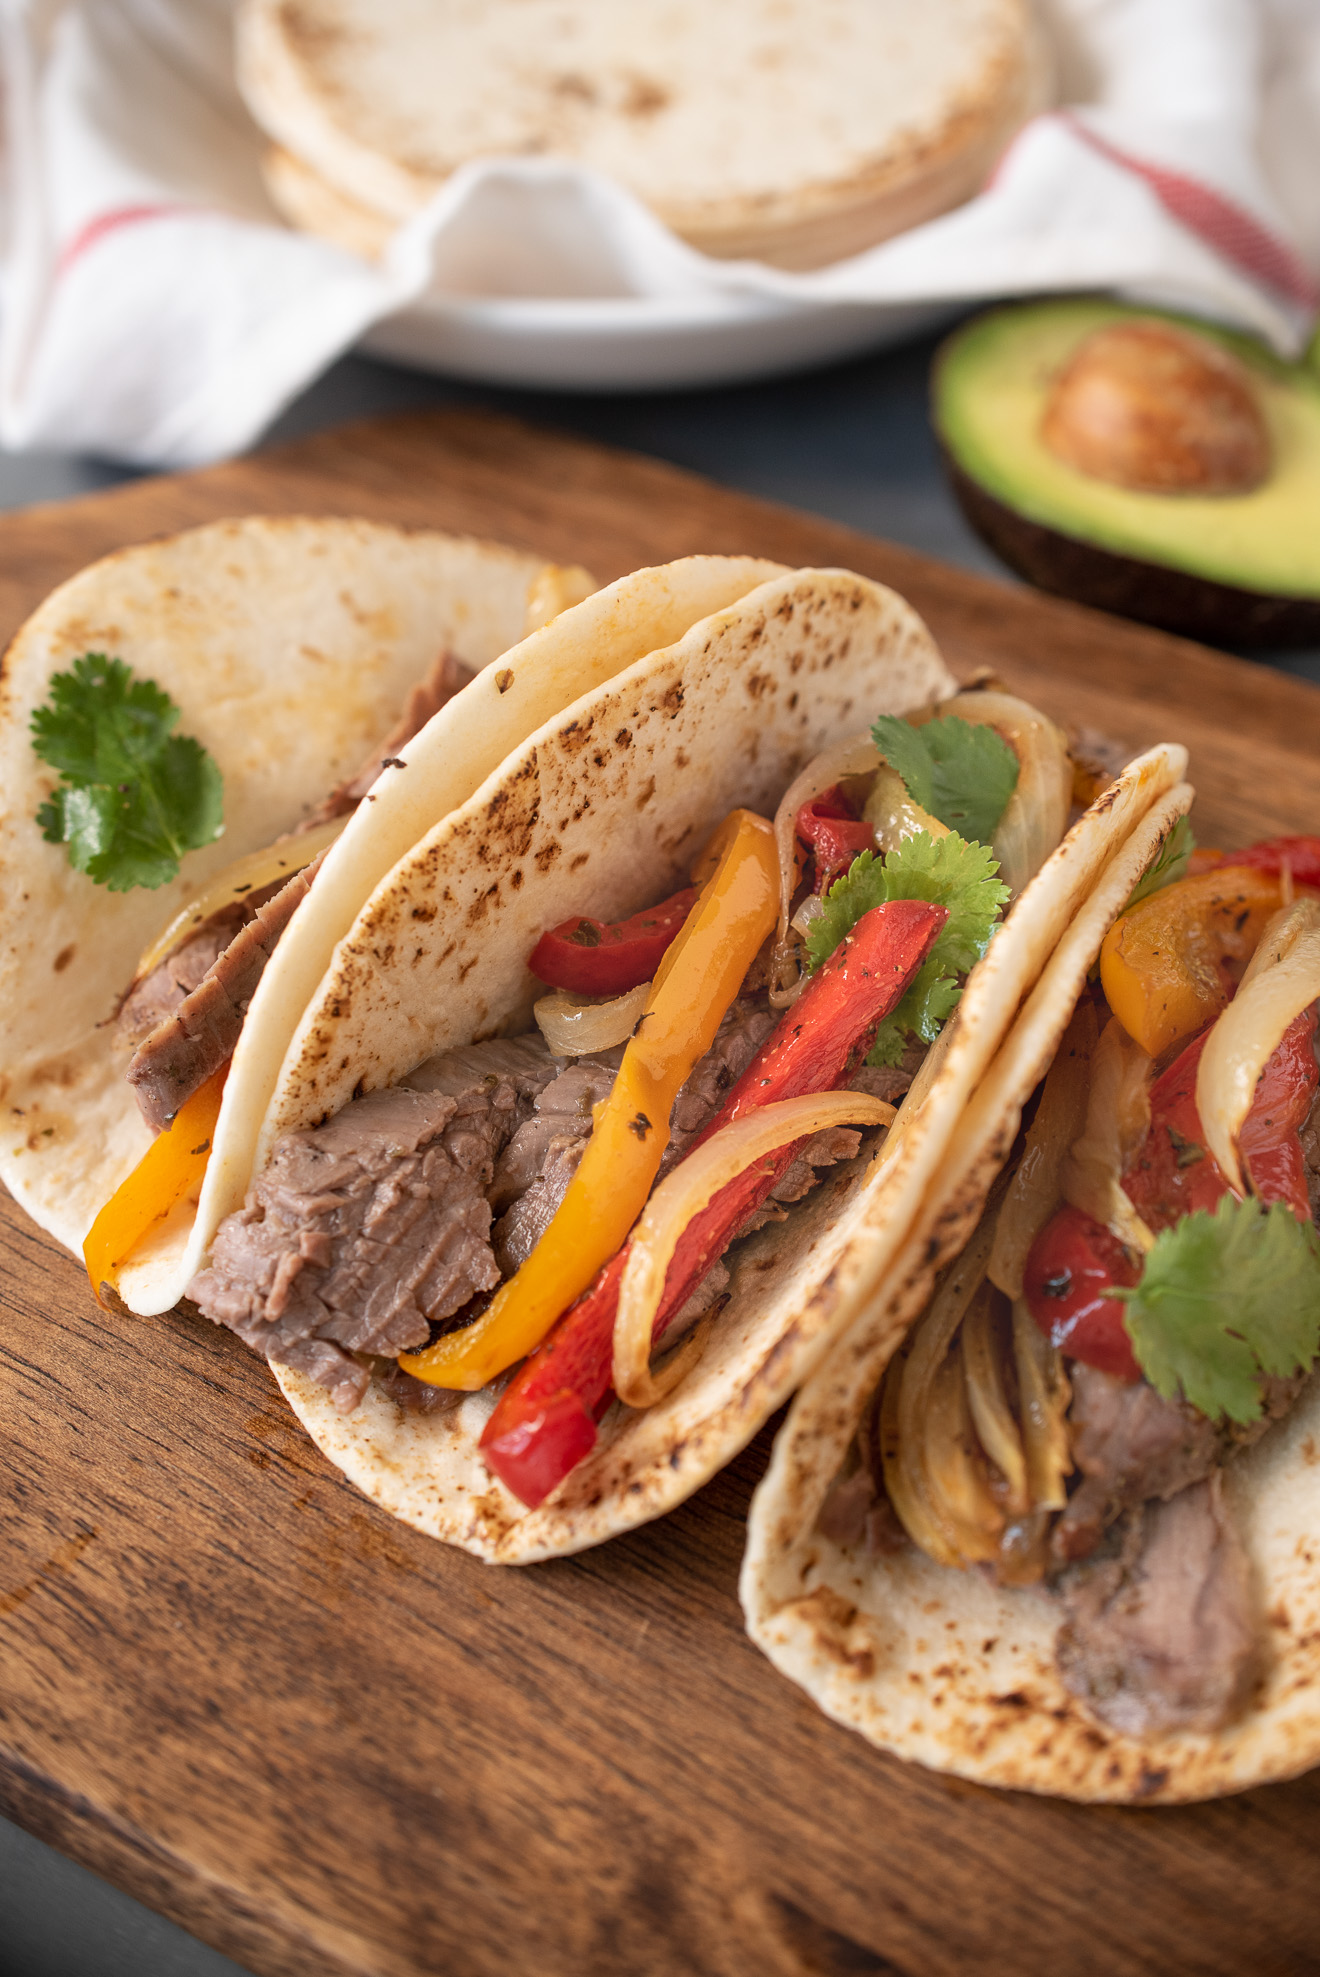 Sliced beef, onions and peppers in tortillas